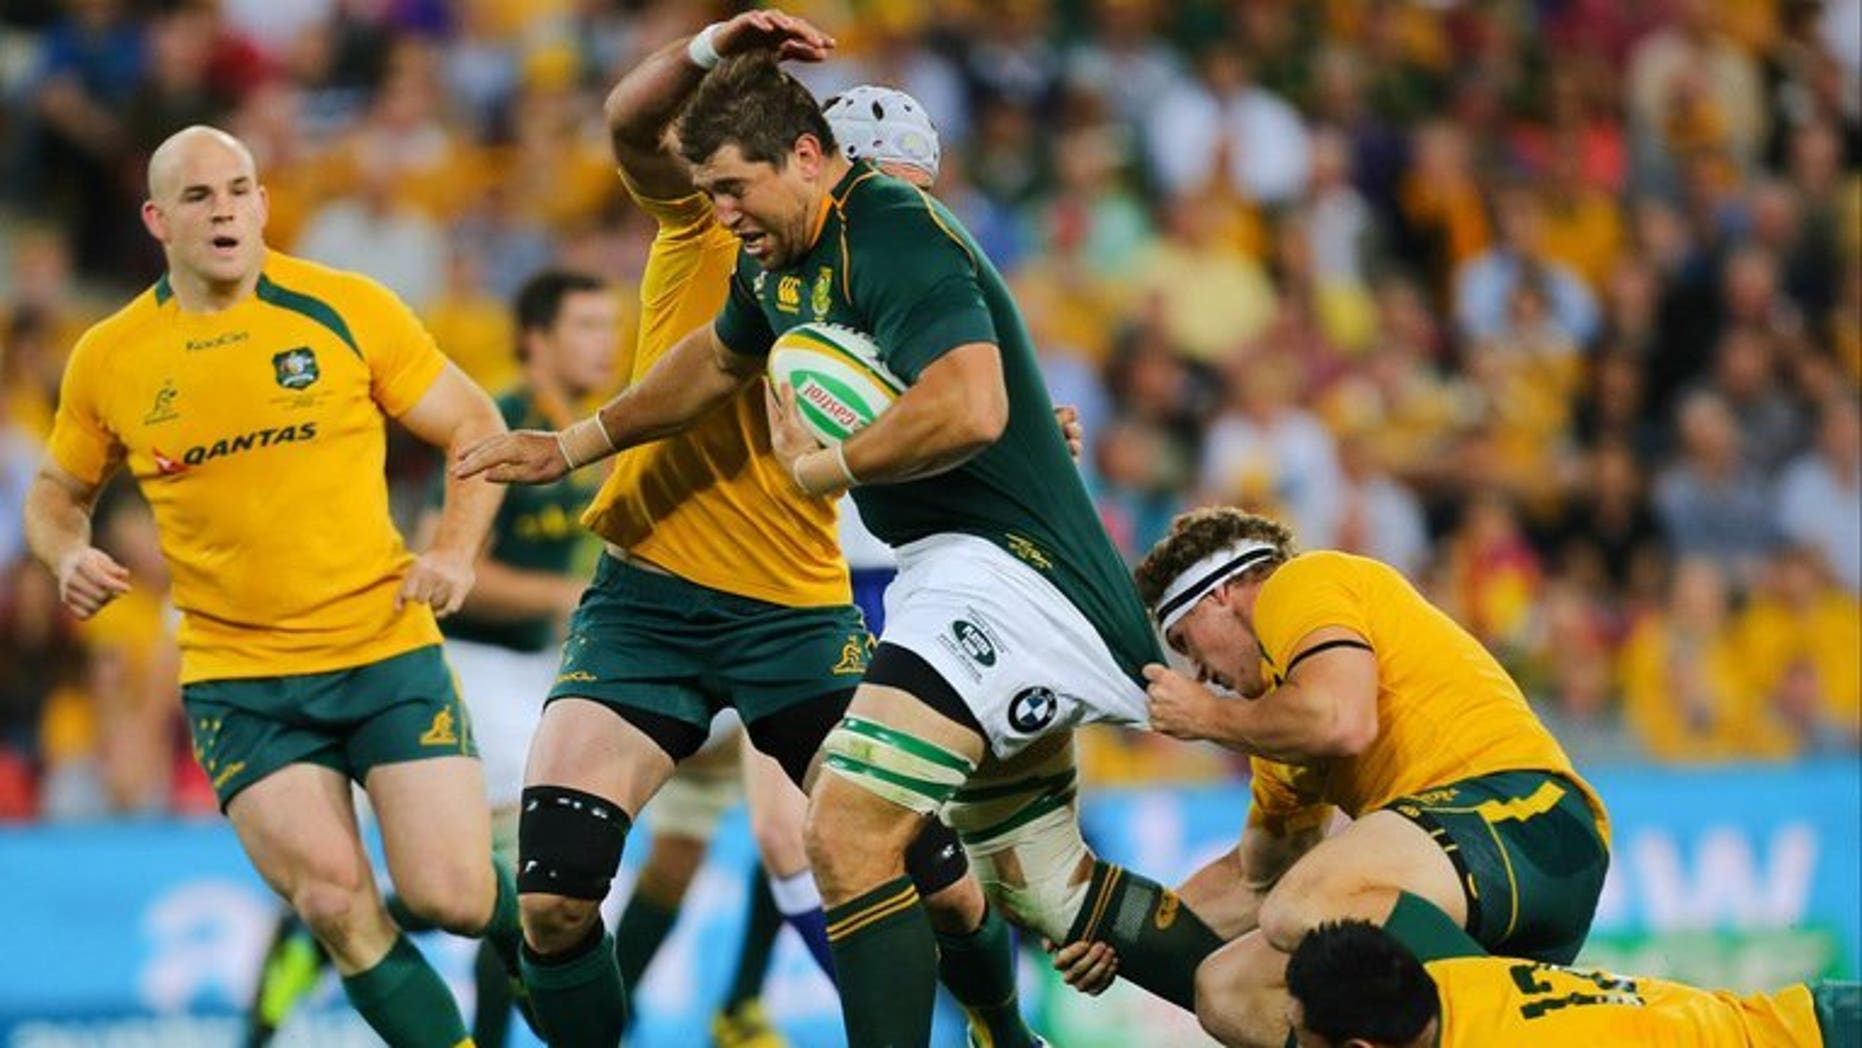 Australia's Michael Hooper and Christian Lealiifano try to tackle South Africia's Willem Alberts during their match on September 7, 2013. Lealiifano said Monday the team remain unified despite three straight losses under new coach Ewen McKenzie.